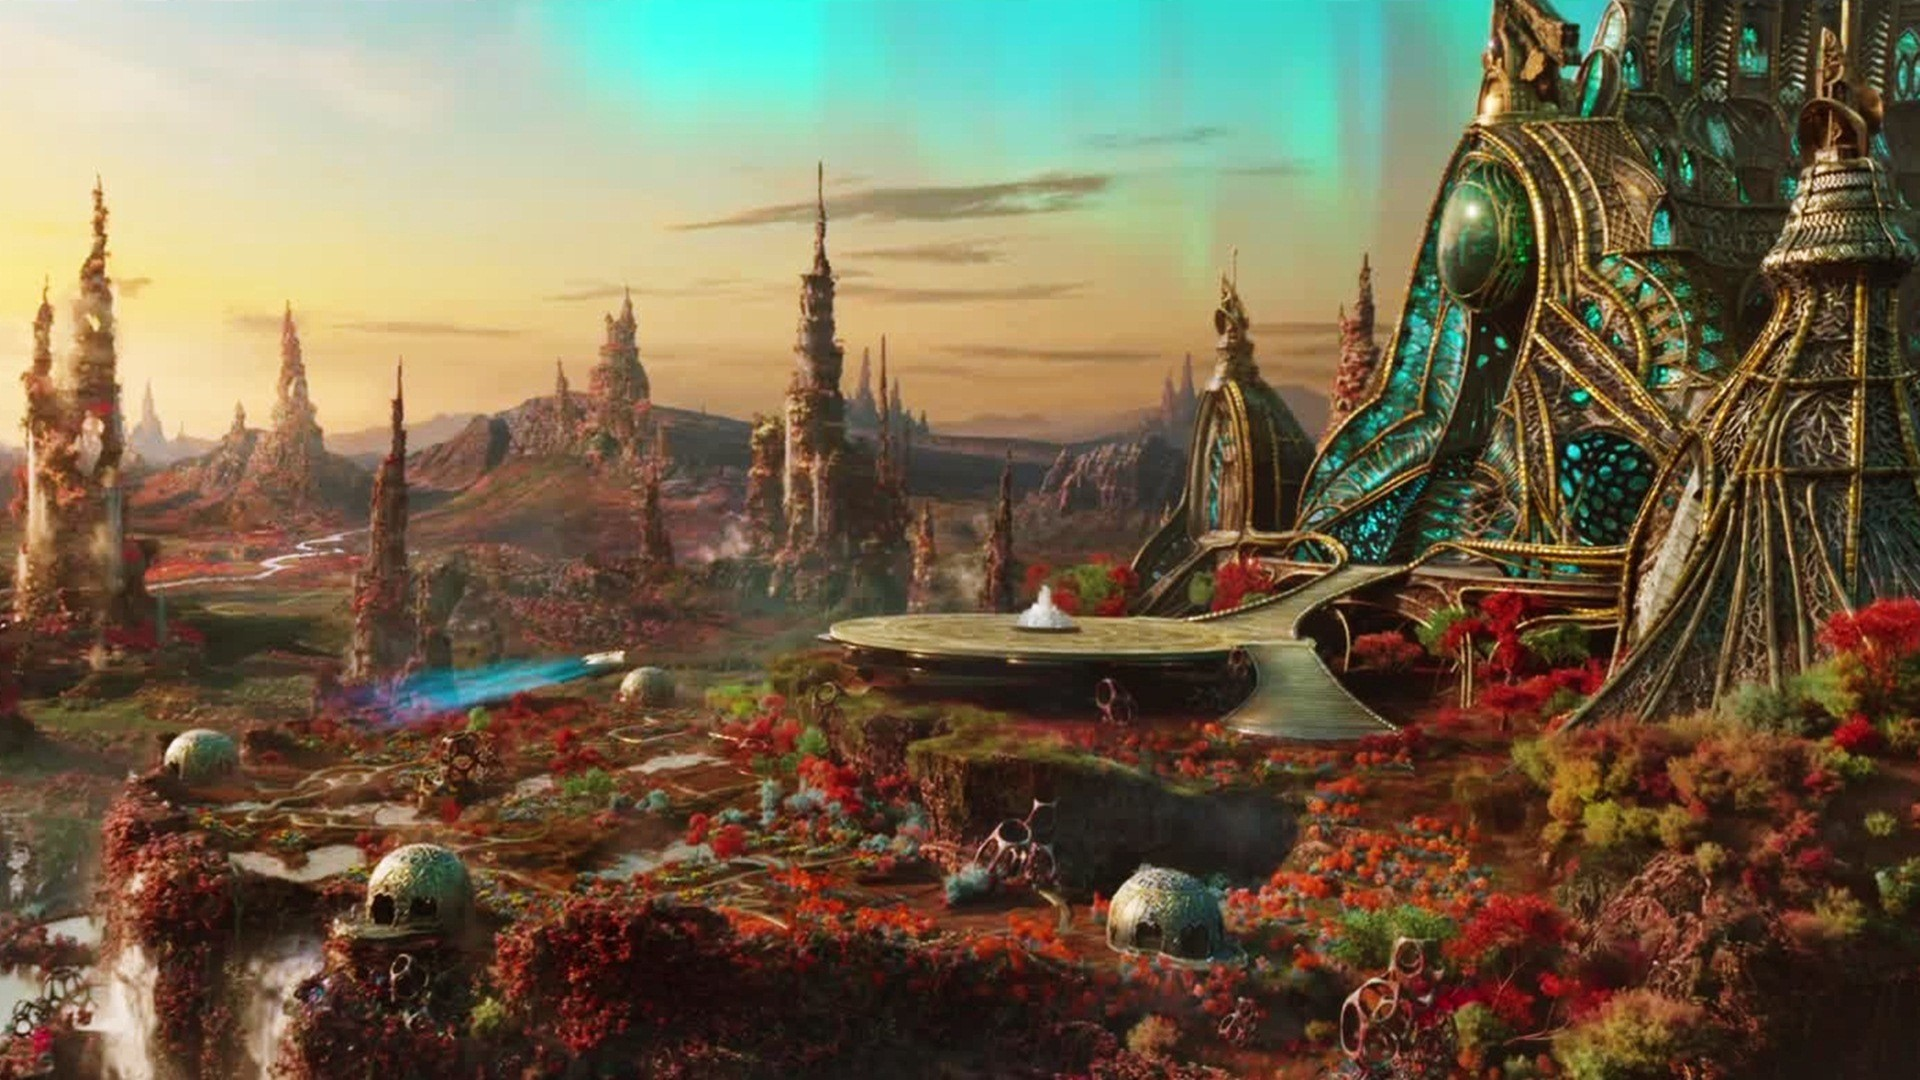 Should You Use Live Wallpapers On Your Phone Find Out - Ego's Planet Guardians Of The Galaxy 2 - HD Wallpaper